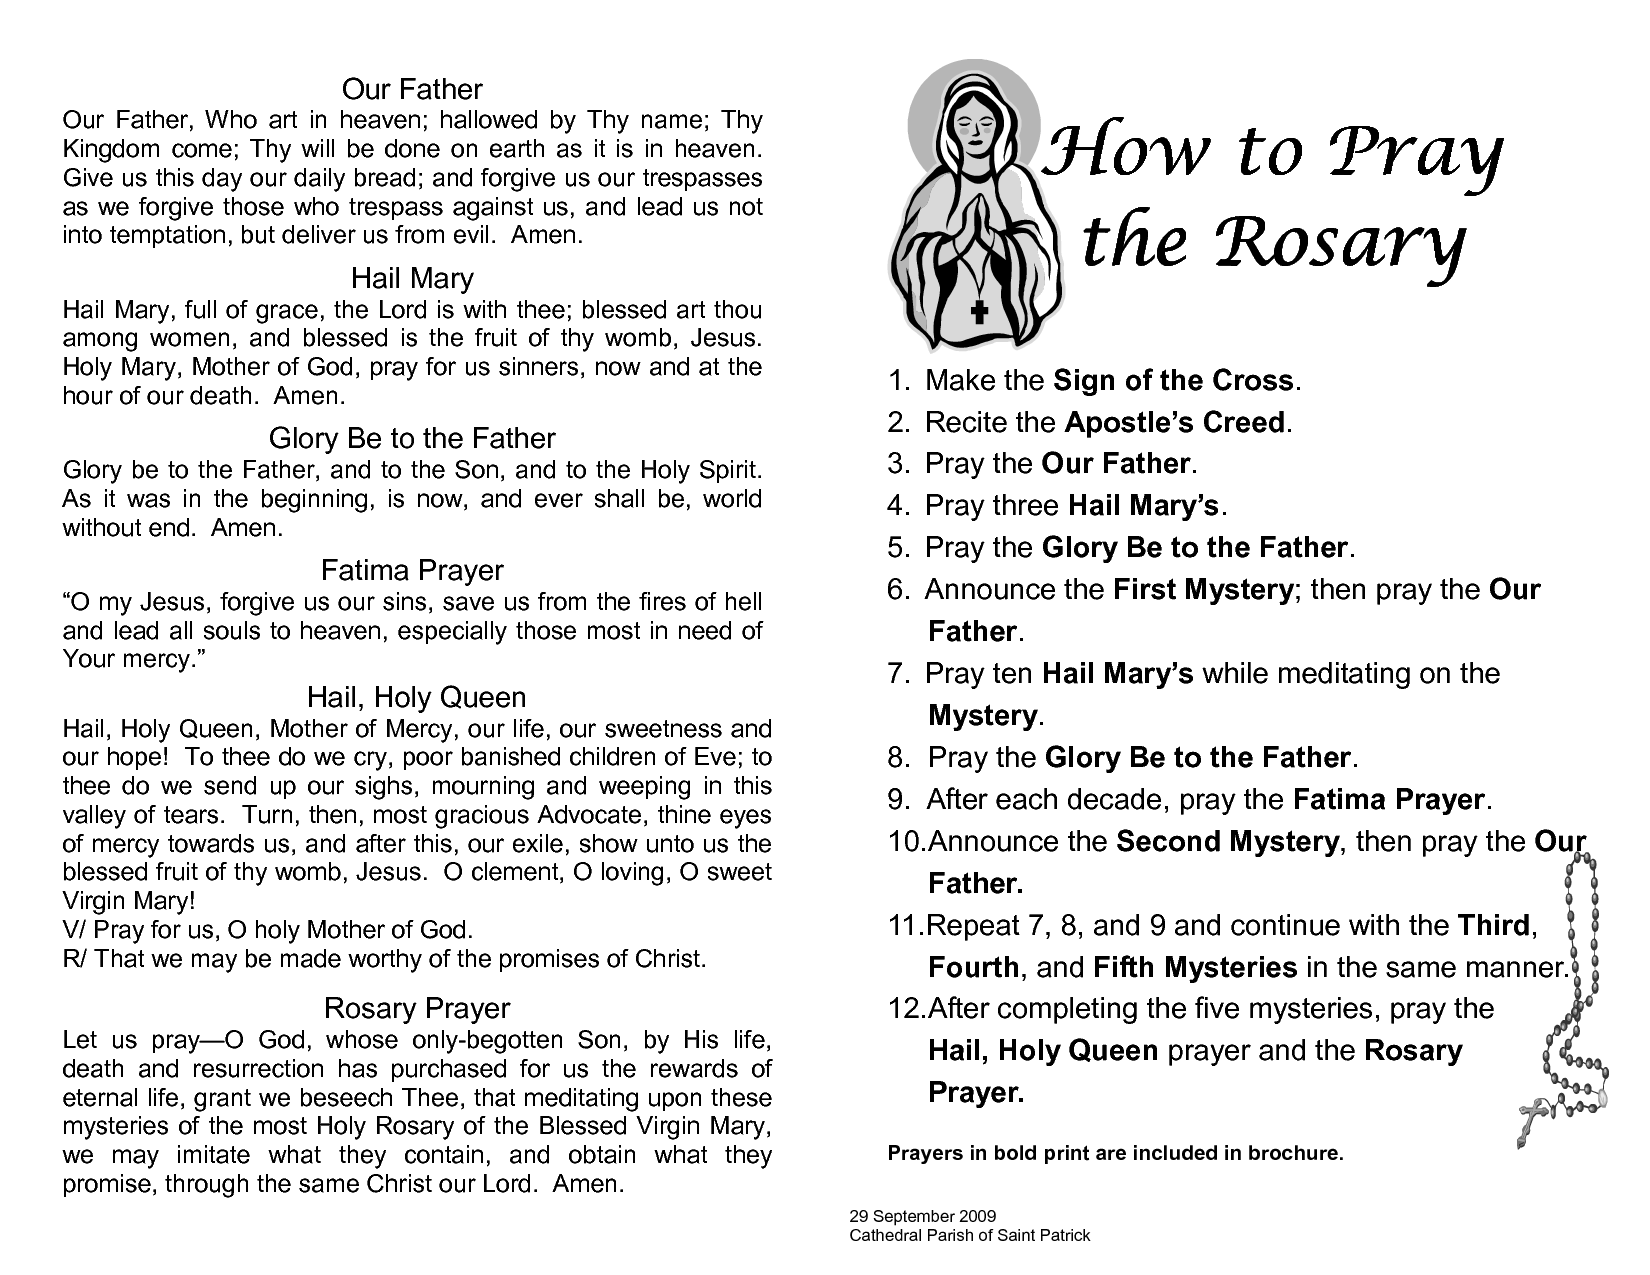 how to pray the rosary printable printable rosary prayer guide prayers 22339 | 8ef633983cd11a56959b397cefd2d4f4